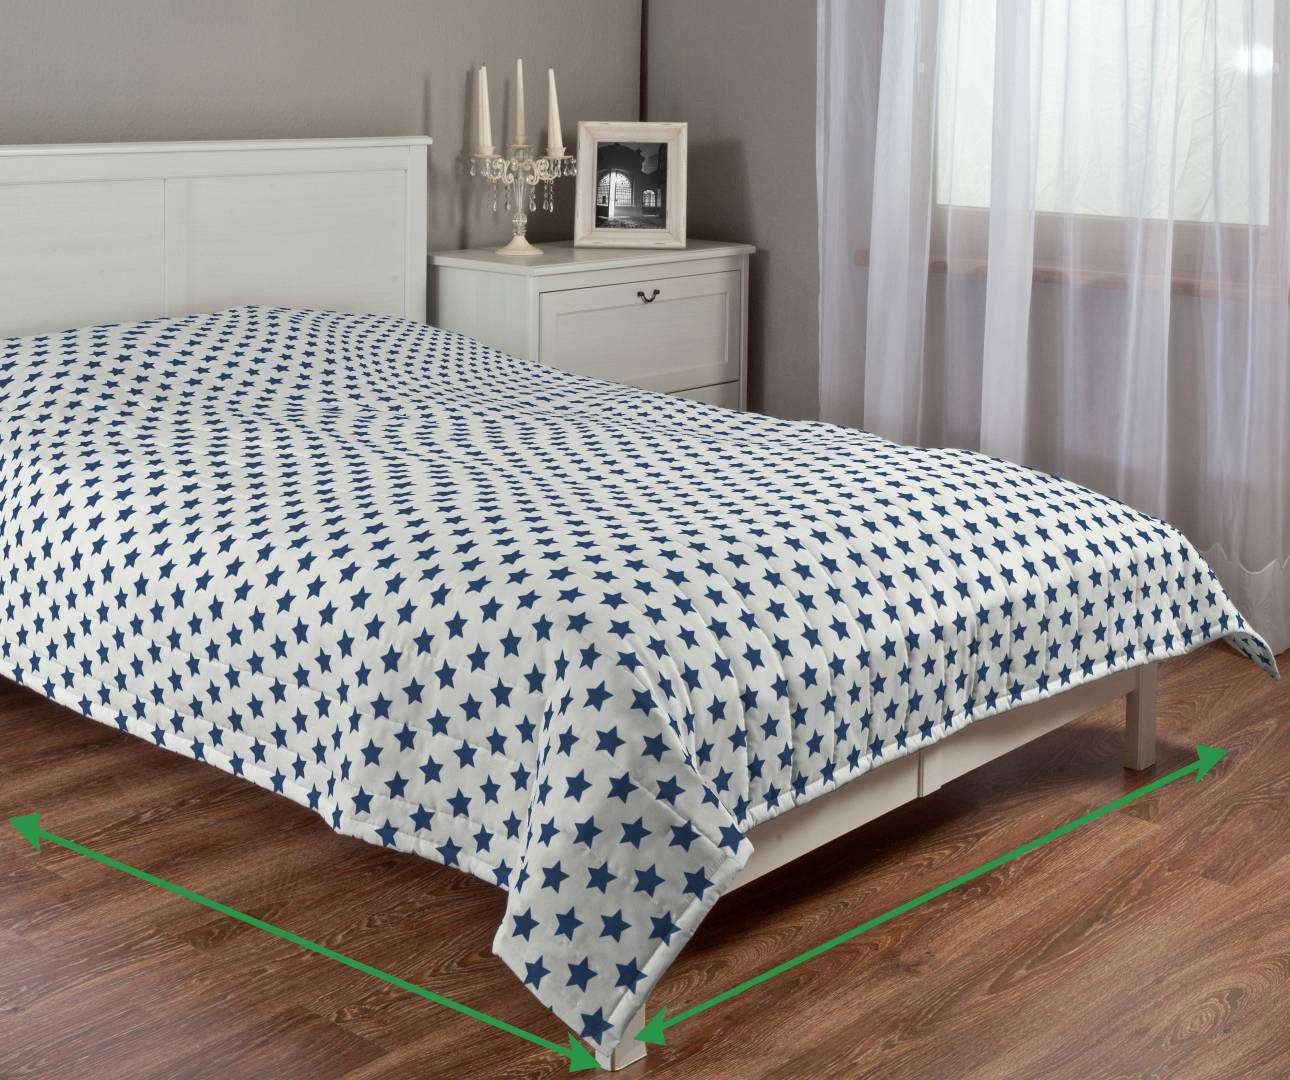 Quilted throw (vertical quilt pattern) in collection Ashley, fabric: 137-71